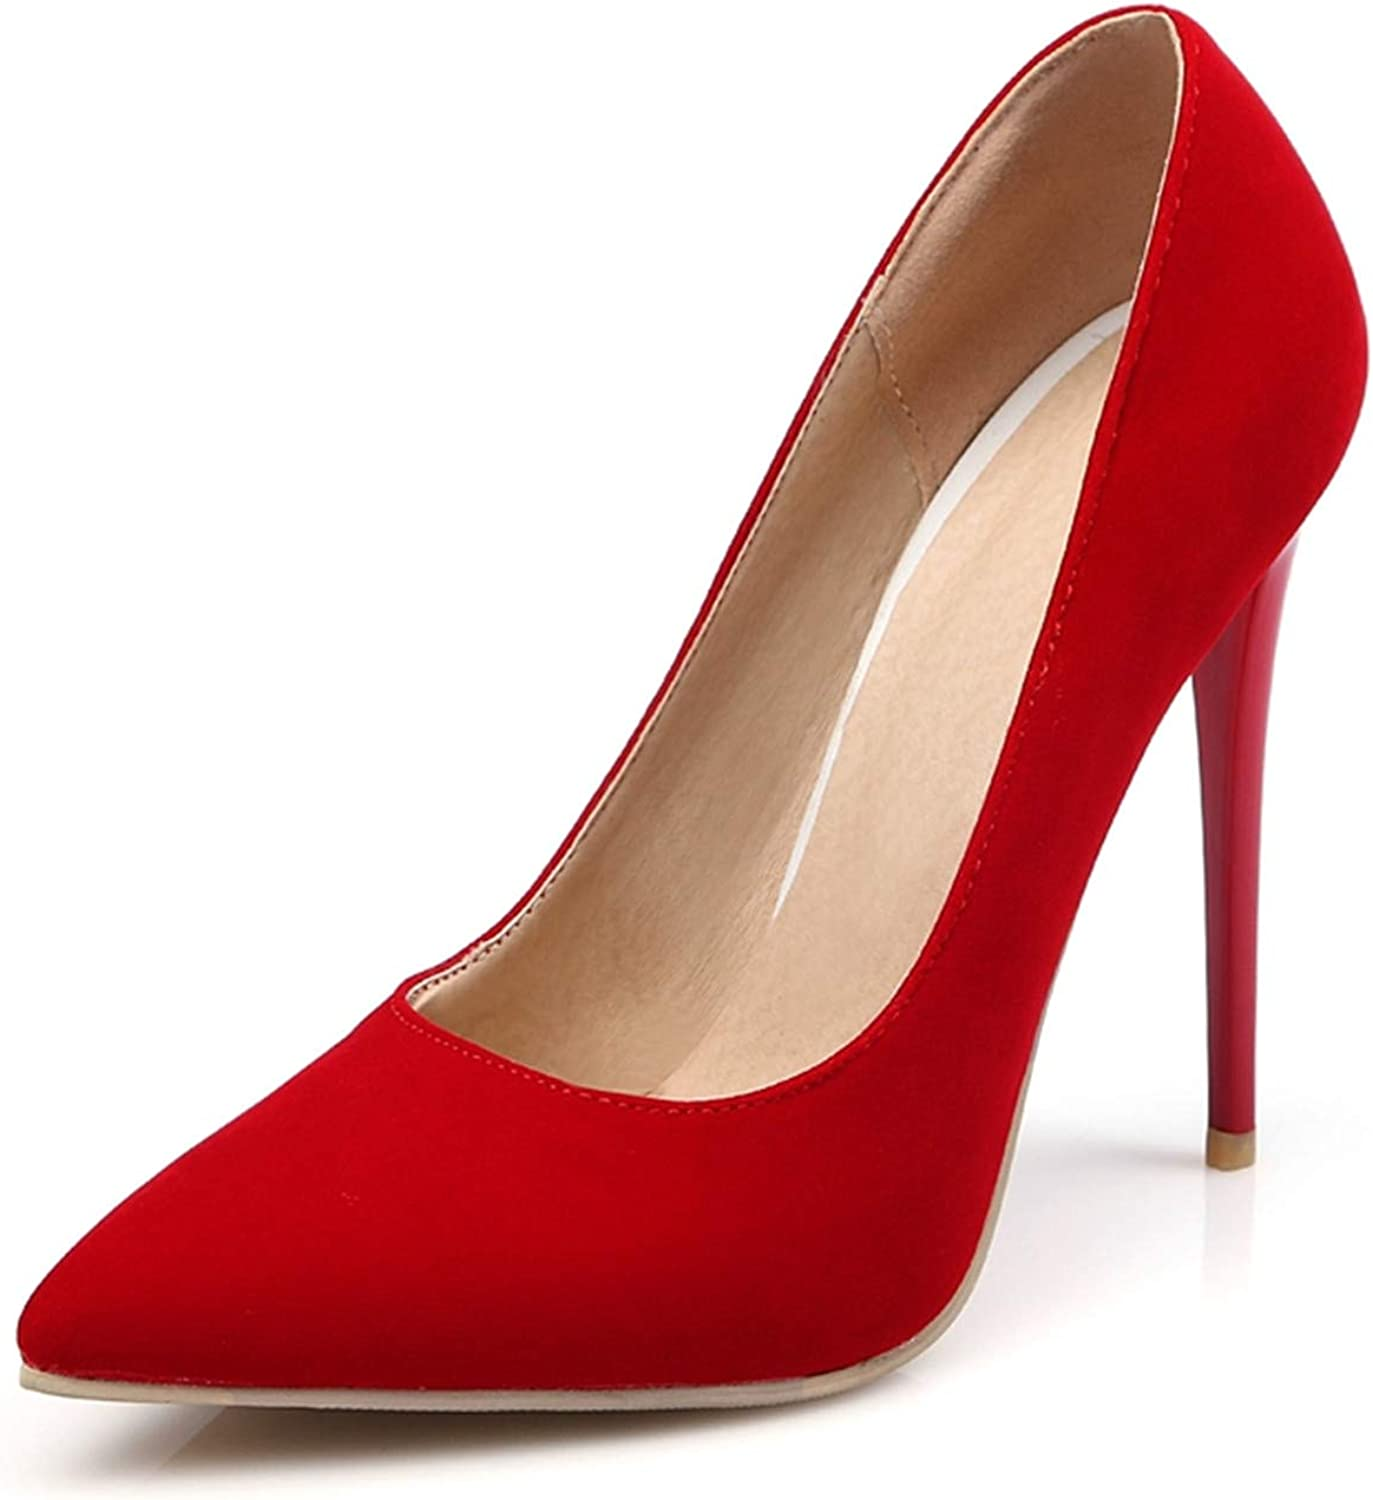 Micca Bacain 12cm Shallow Thin High Heels Pumps Dress Office Lady's Pointed Toe Summer Women shoes Stilettos